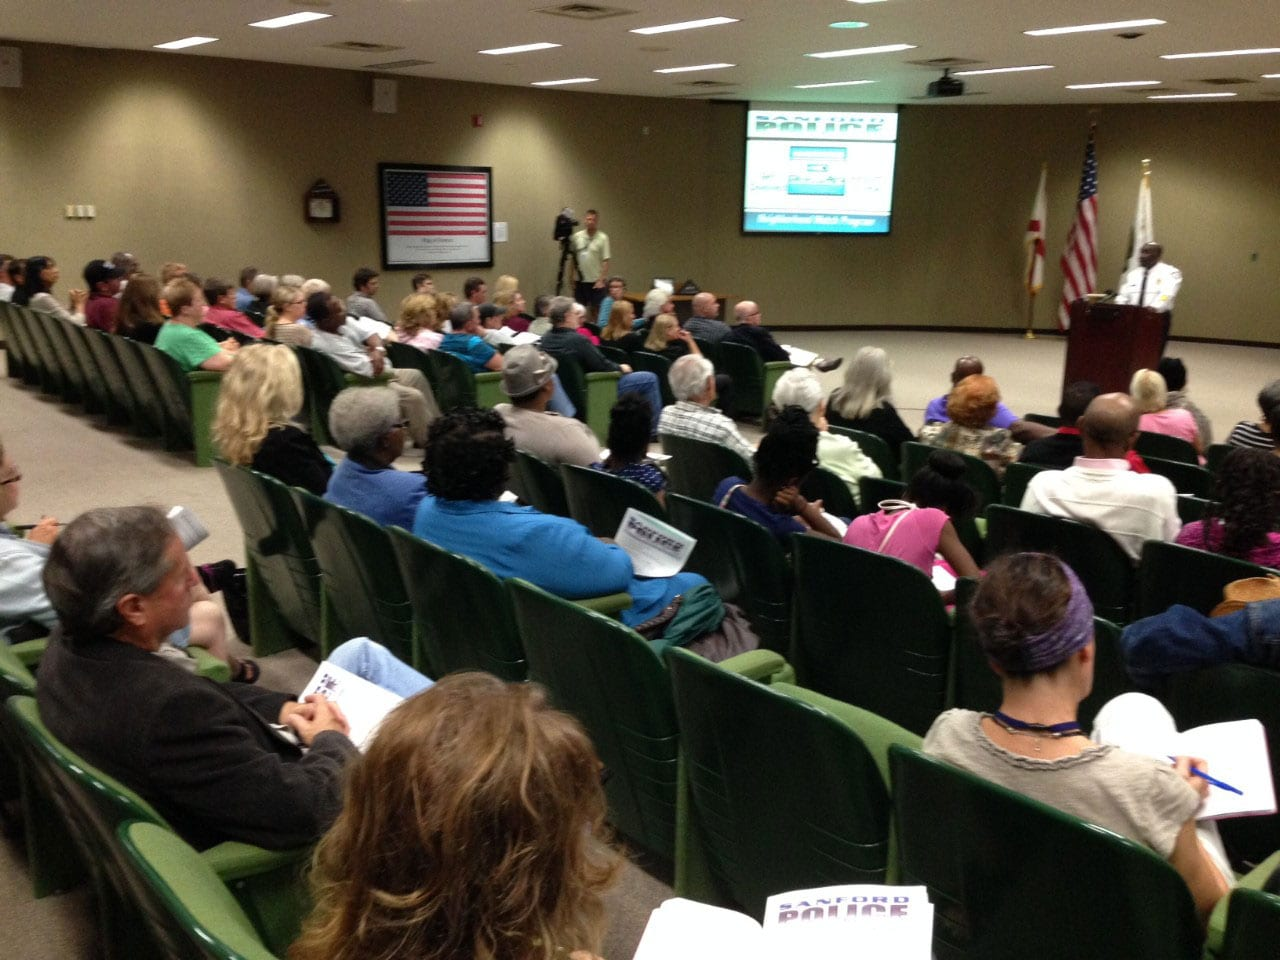 About 100 people attended Tuesday night's meet where Sanford Police Chief Cecil Smith announced the new neighborhood watch rules. (Photo credit: The Orlando Sentinel)